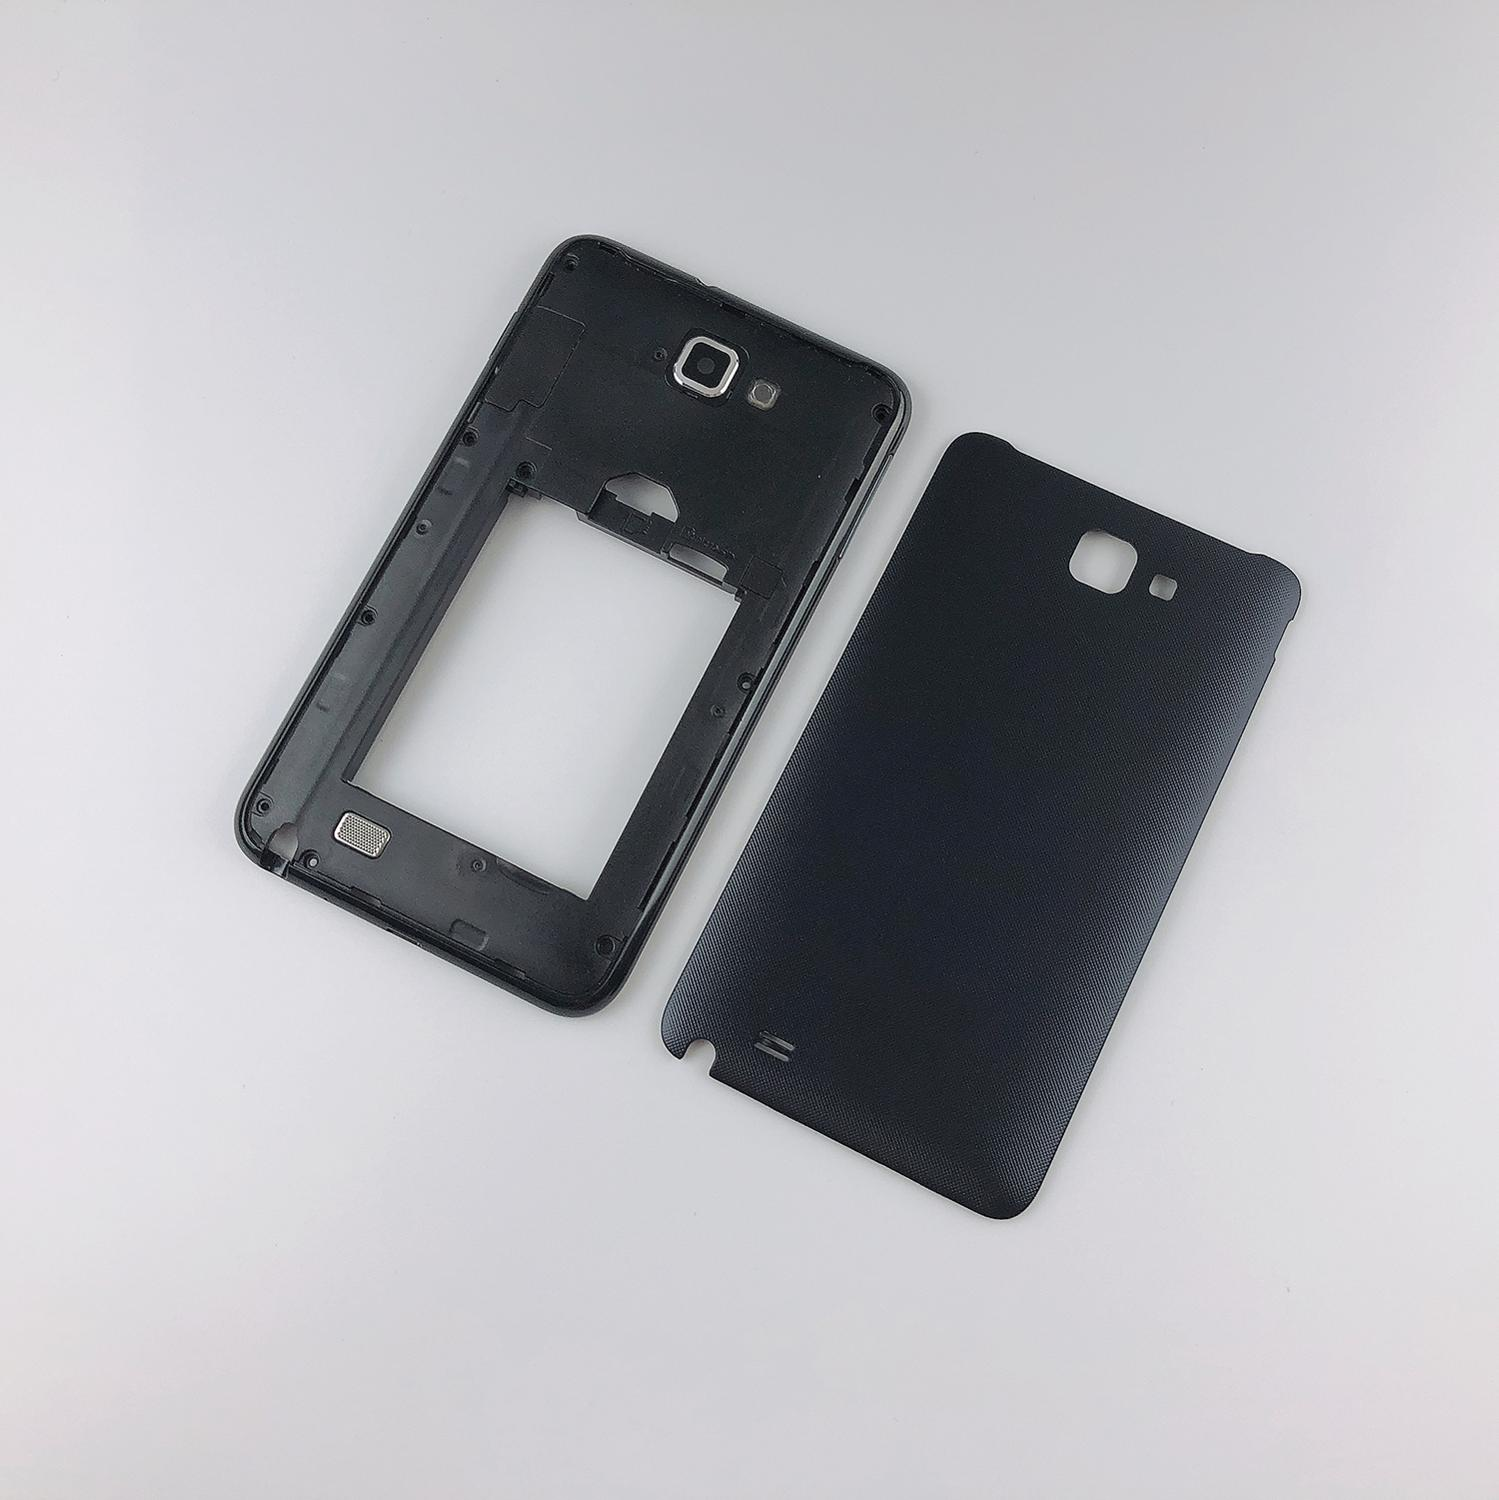 For Samsung Galaxy Note 1 N7000 I9220 Housing Middle Frame Cover + Battery Back Cover